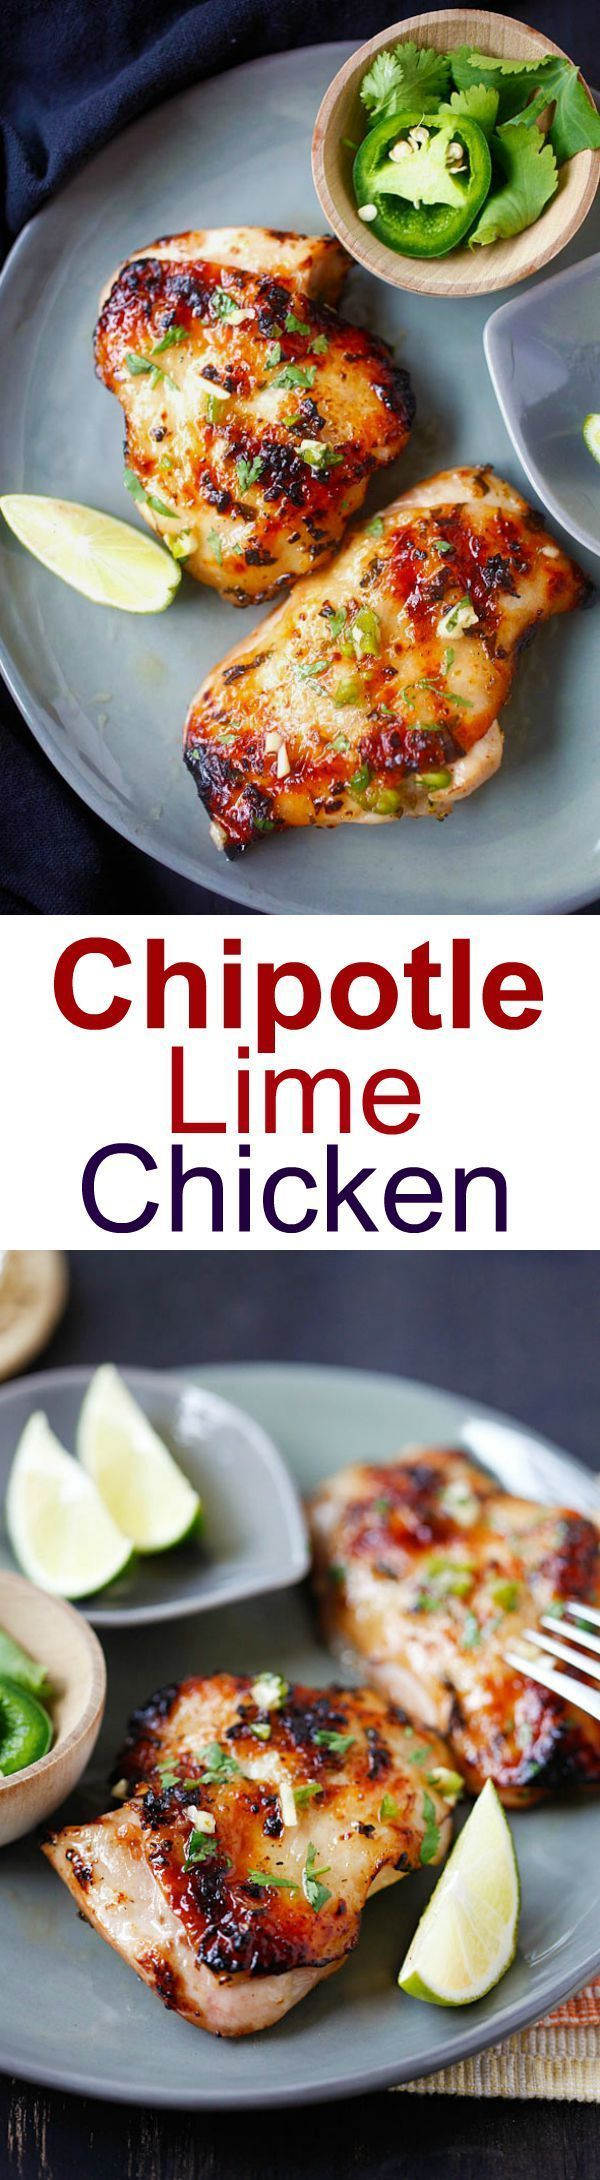 Chipotle Lime Chicken – ridiculously delicious and juicy grilled chicken recipe with chipotle chili, lime juice, garlic and cilantro! | http://rasamalaysia.com